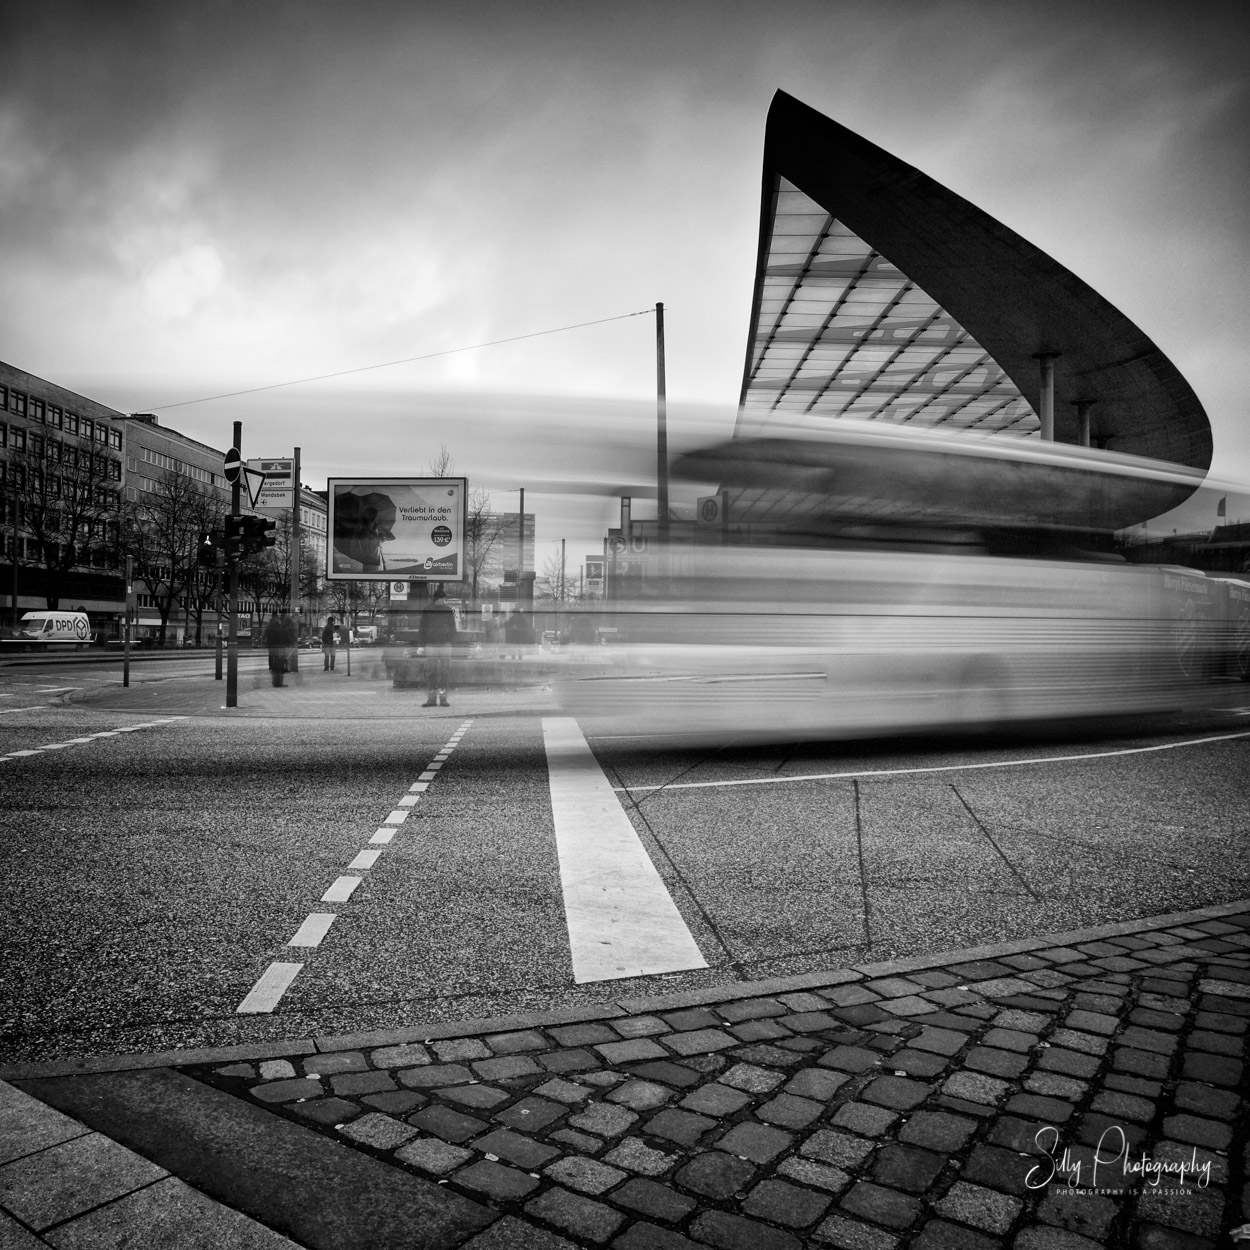 Hamburg / ZOB, Bus, Busstation, Langzeitbelichtung, 2015, © Silly Photography